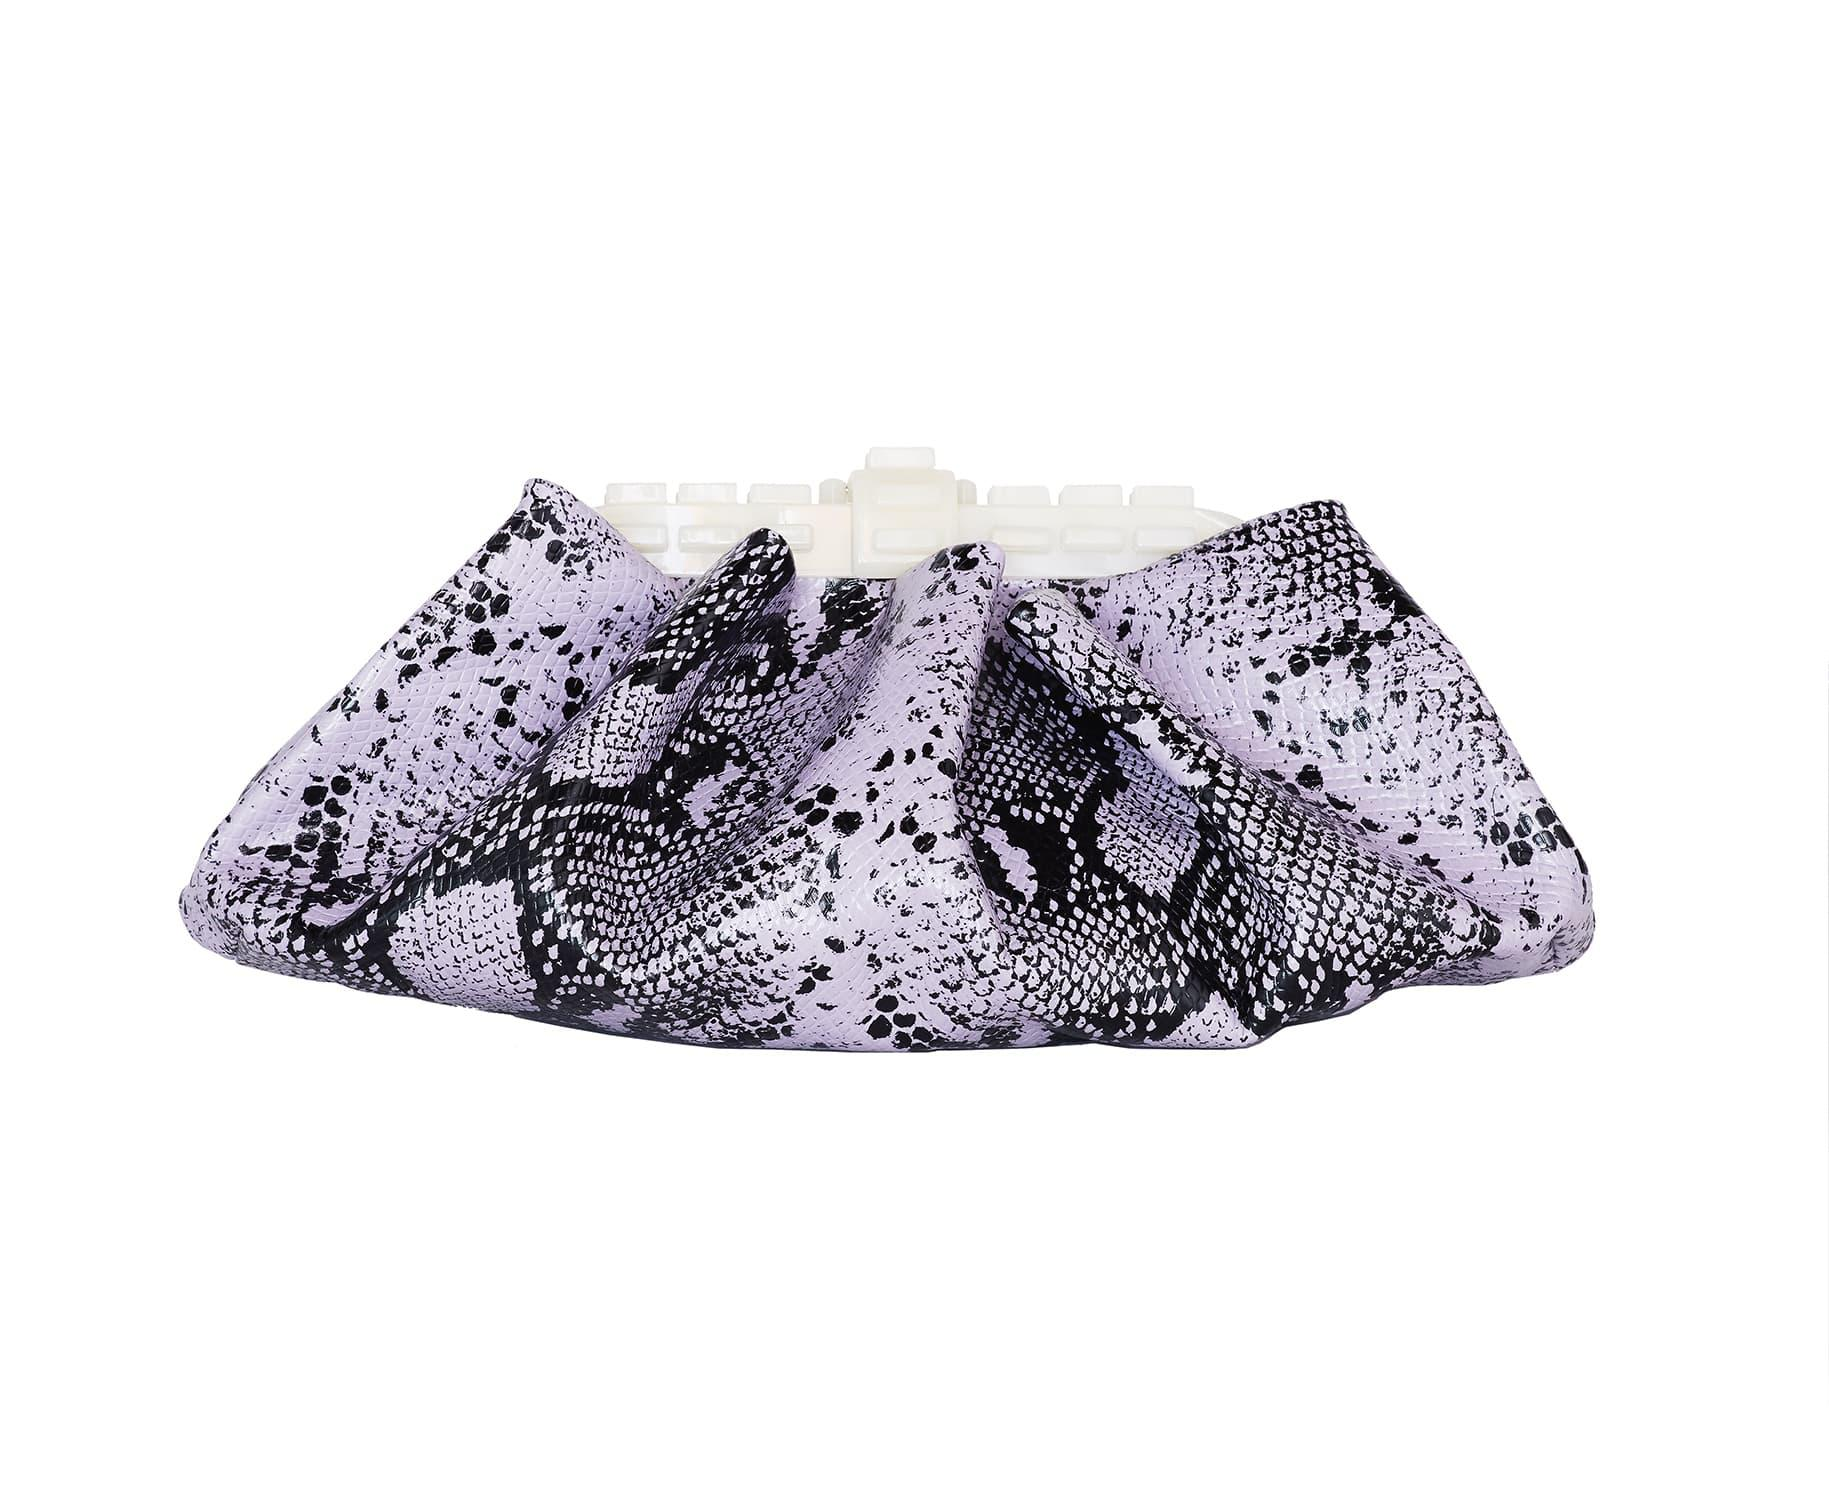 JERRY AMETHYST ICE EMBOSSED SNAKE GATHERED CLUTCH BAG